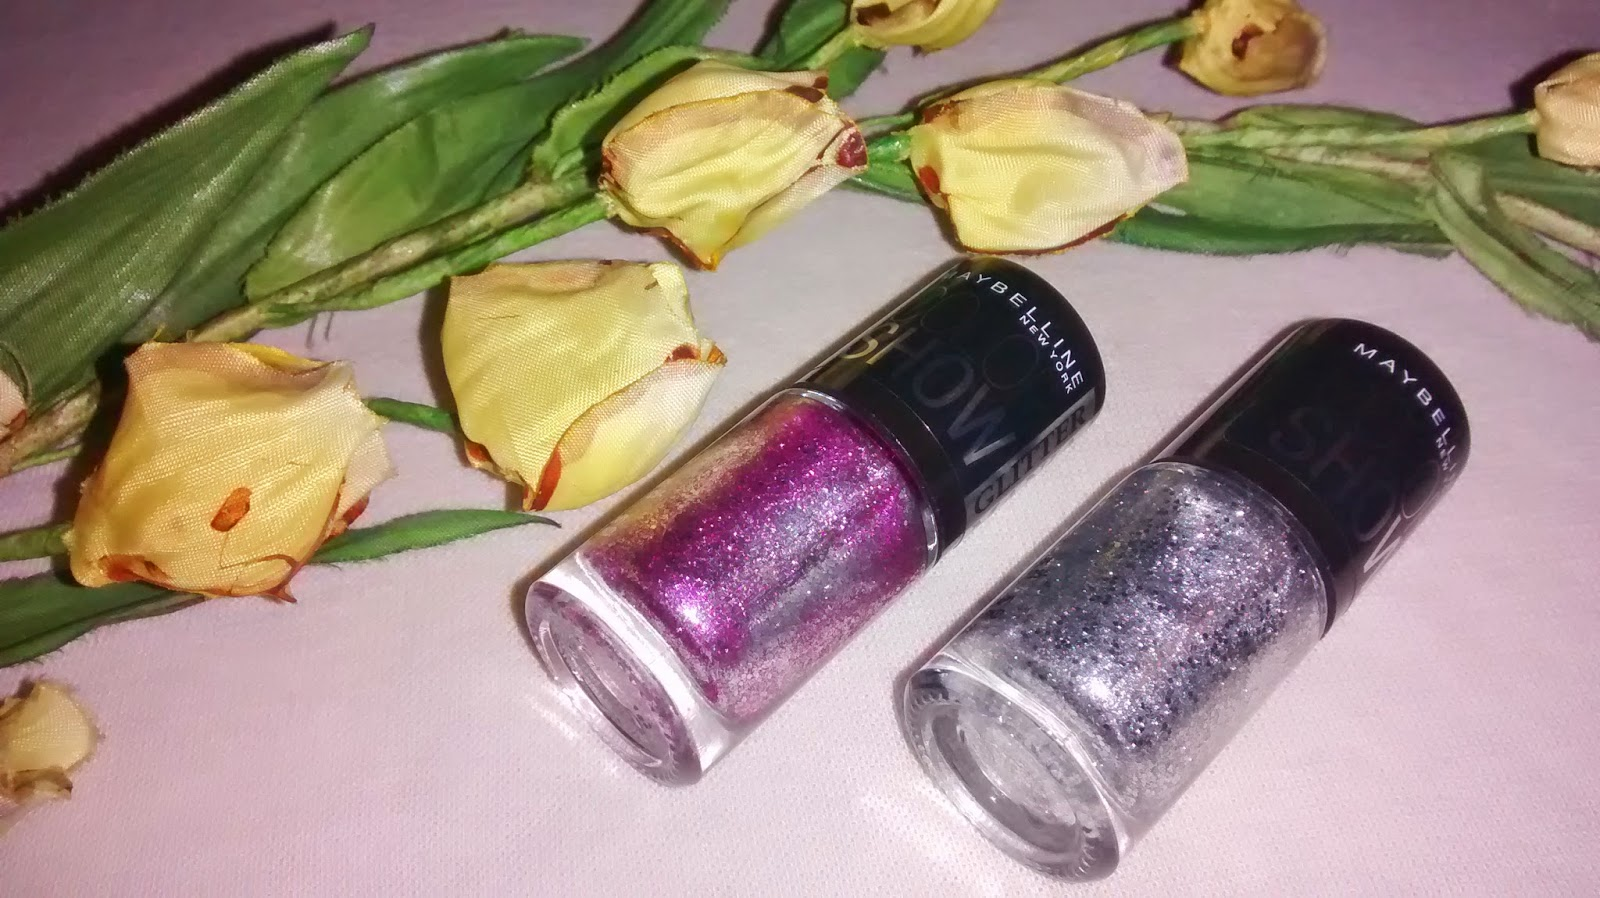 Maybelline Color Show Glitter Mania Nail Enamels - Dazzling Diva #602 and Matinee Mauve #605